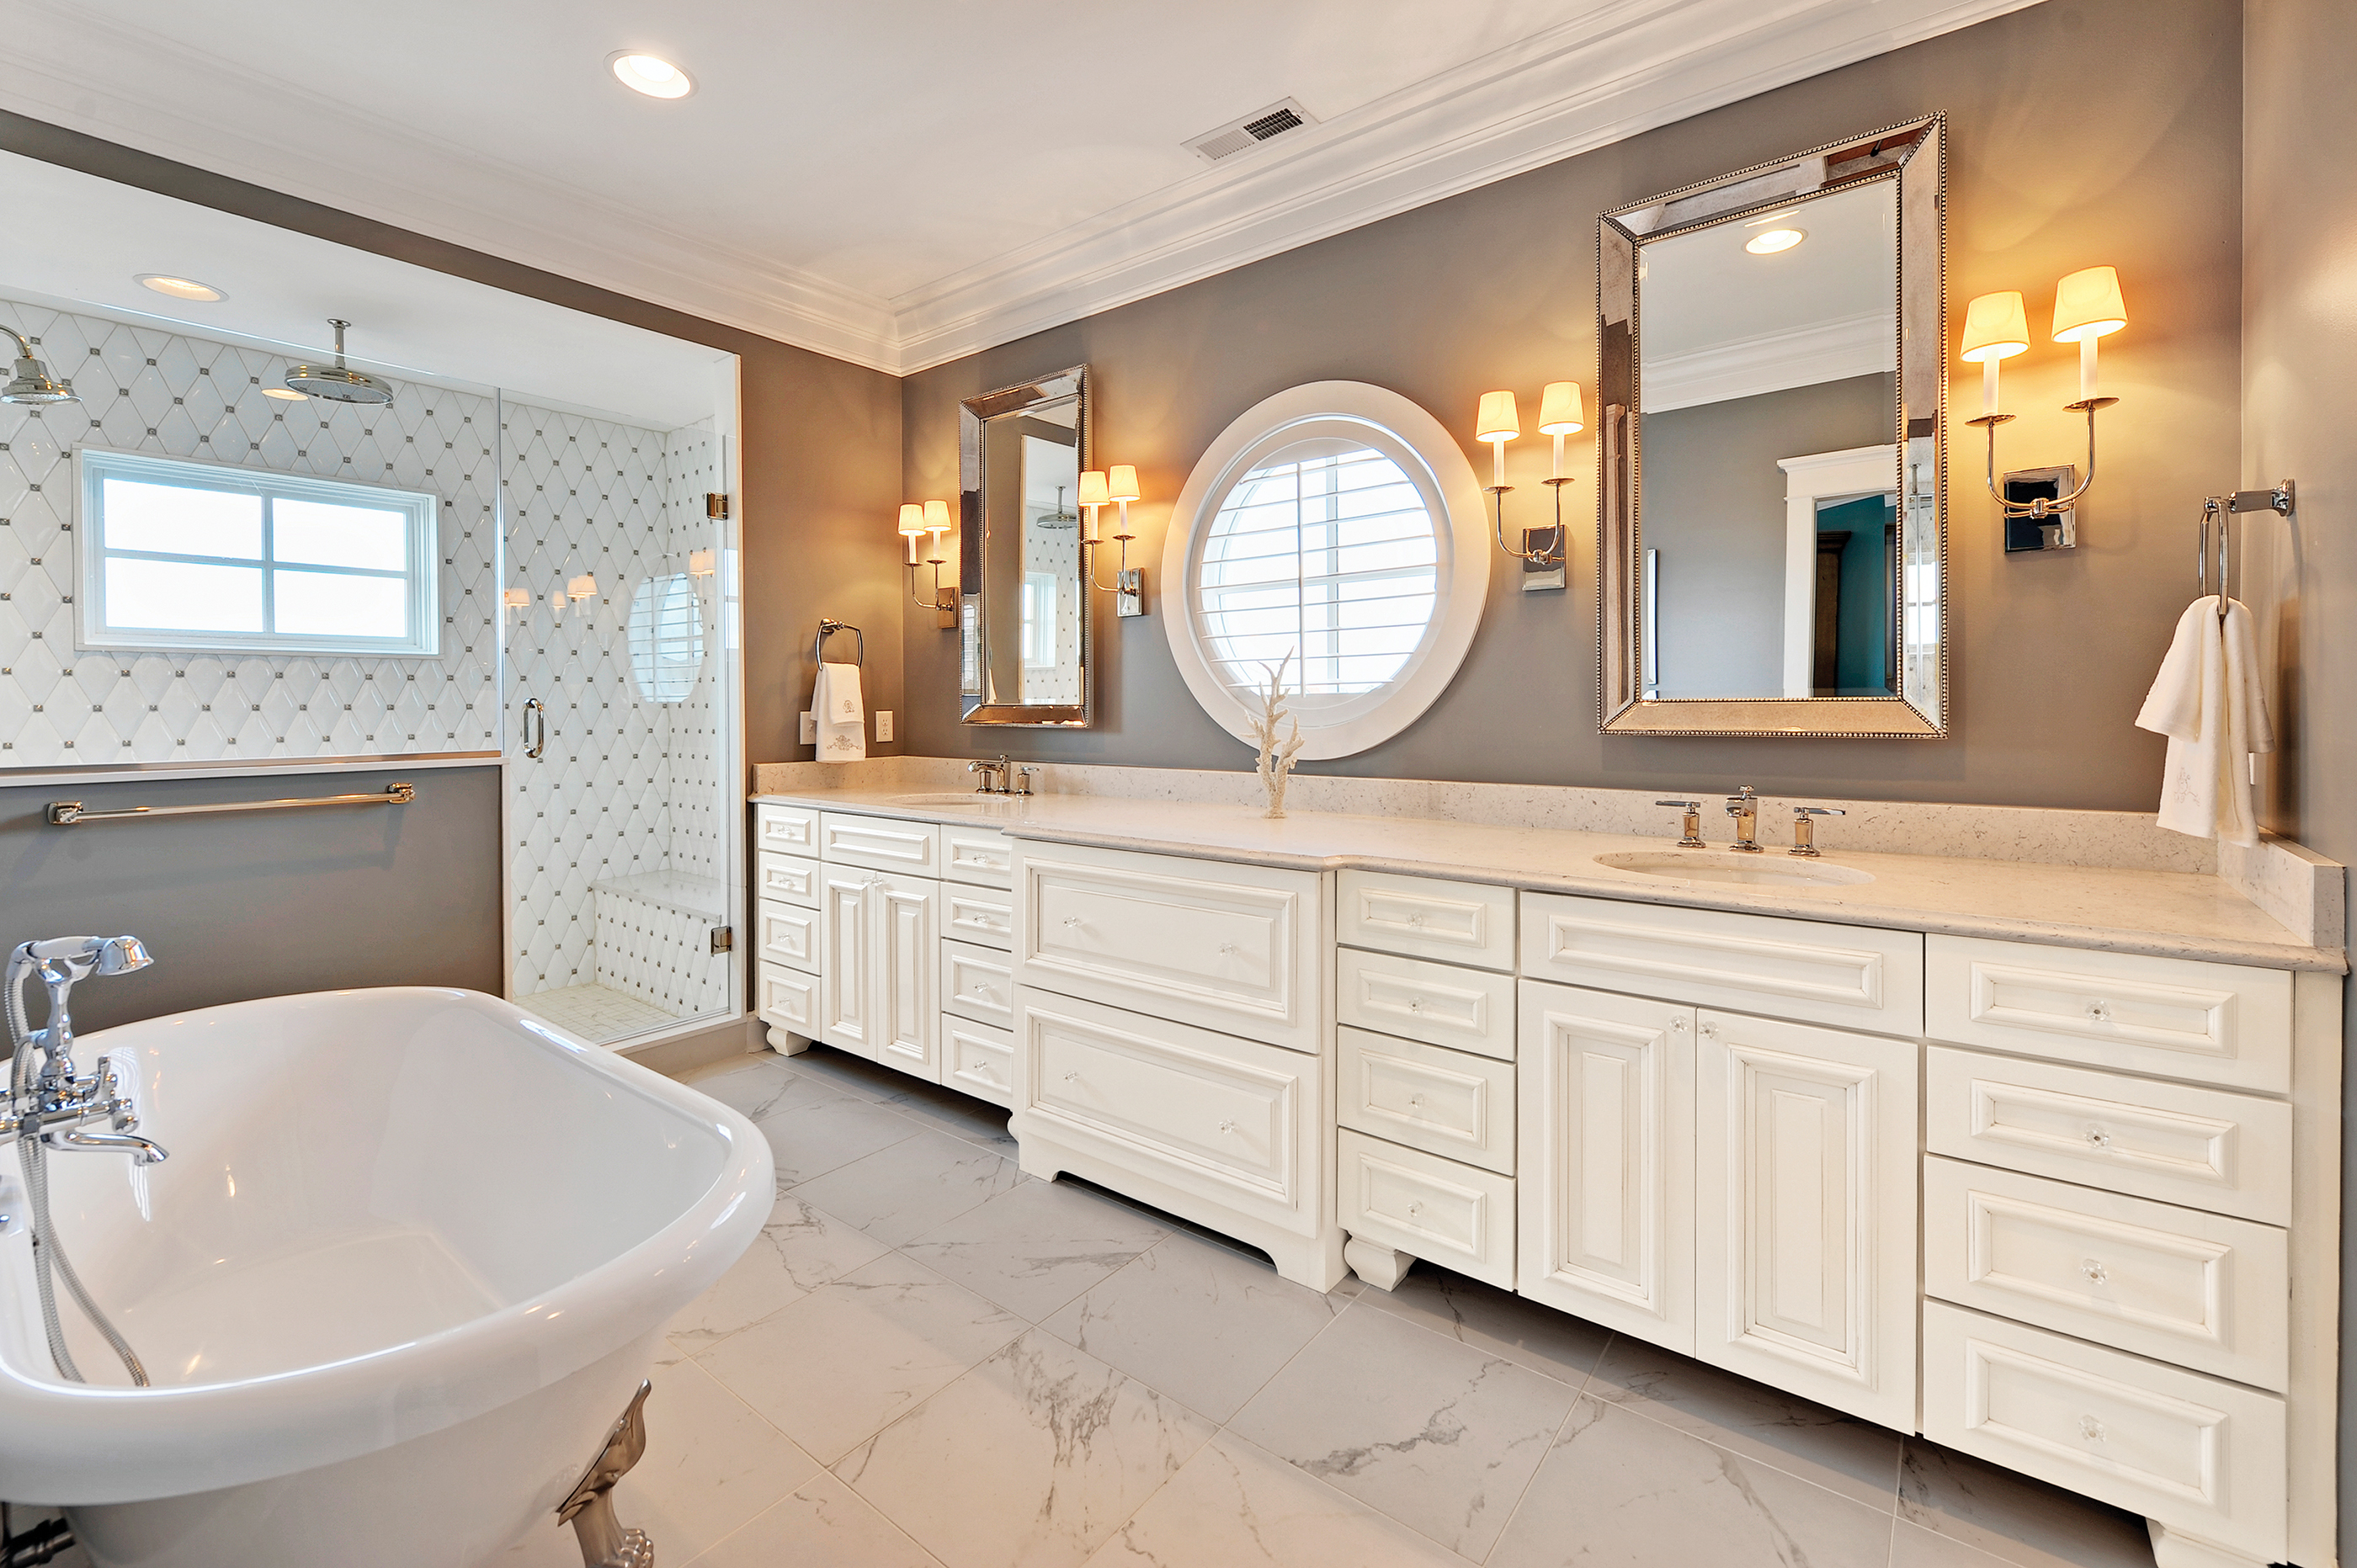 Things You Need To Replace In Order To Renovate Your Bathroom - Renovate your bathroom